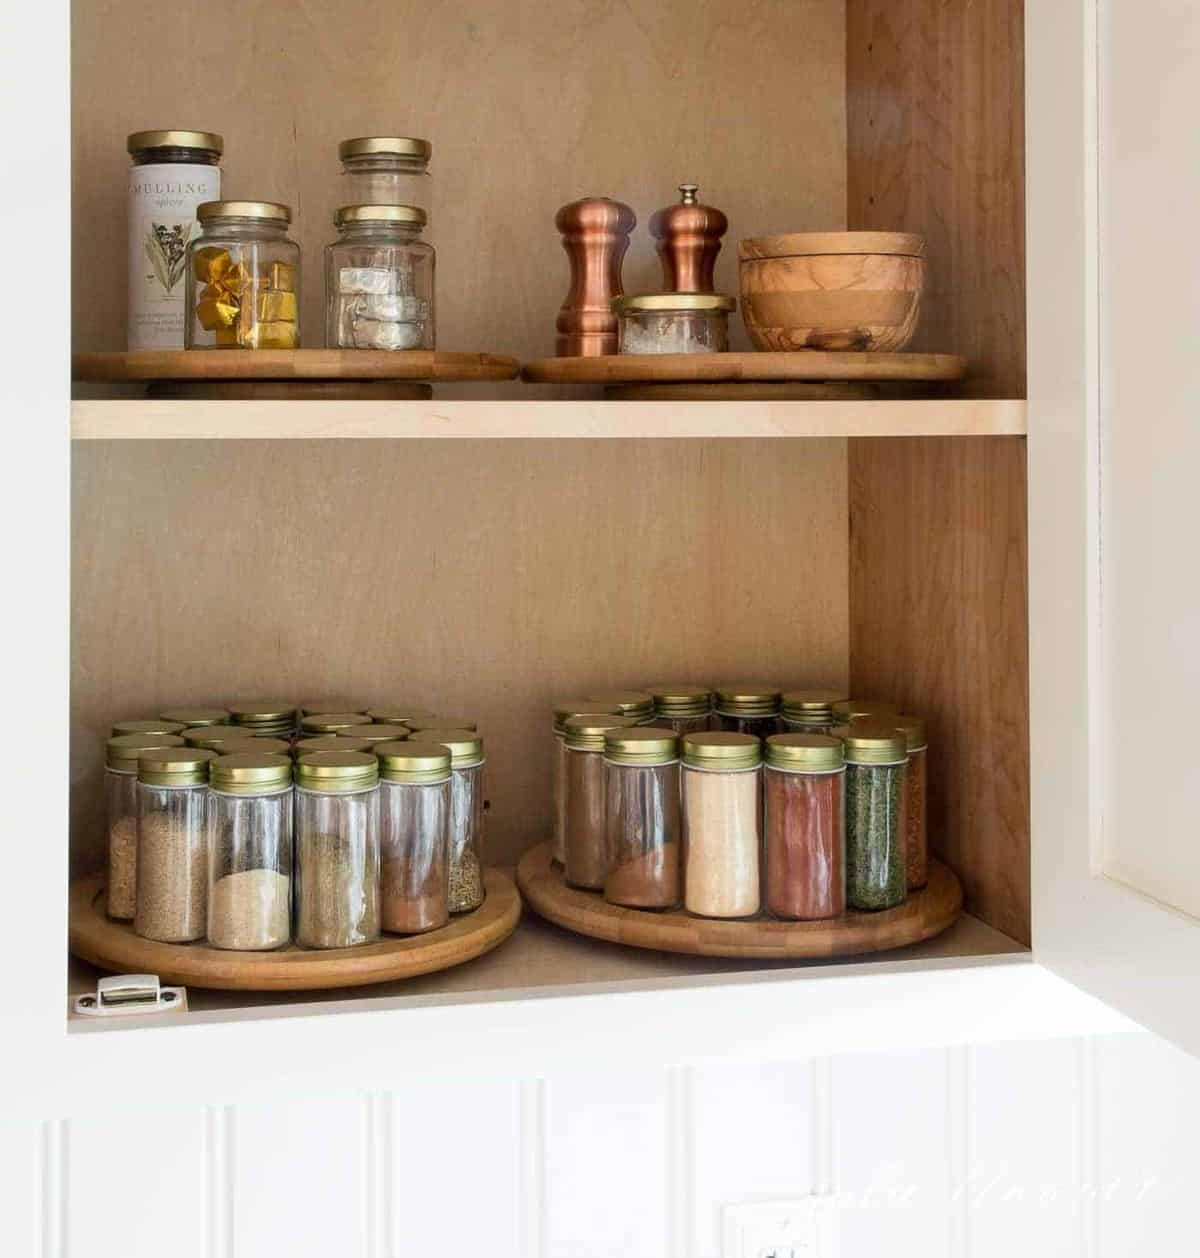 Organized spice jars on lazy susans inside a cabinet.